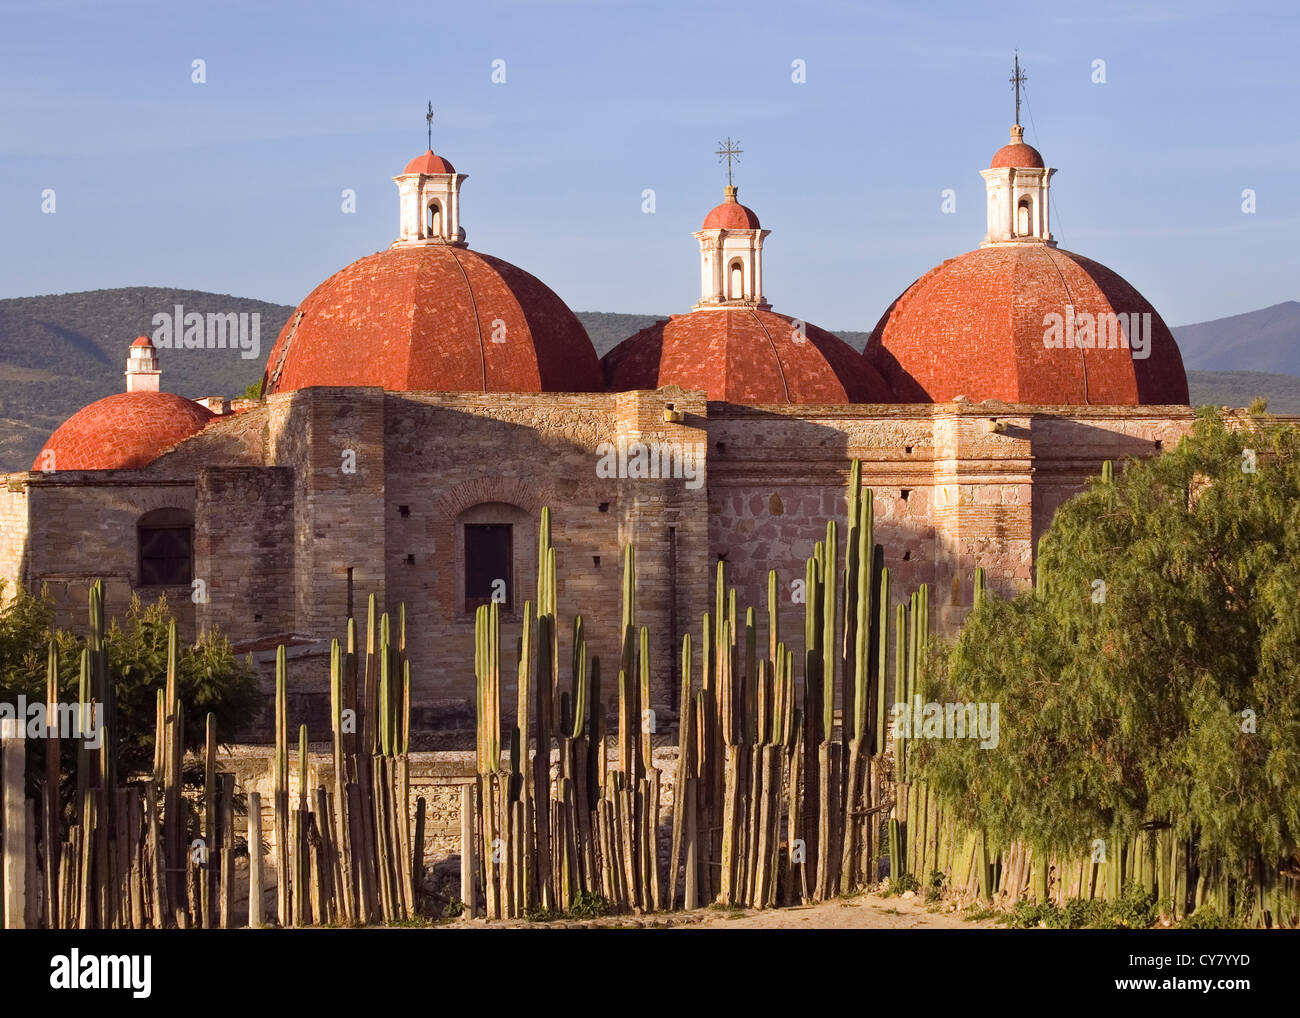 Red Domes of Church at the Mitla,Oaxaca Archaeology Site, Mexico - Stock Image